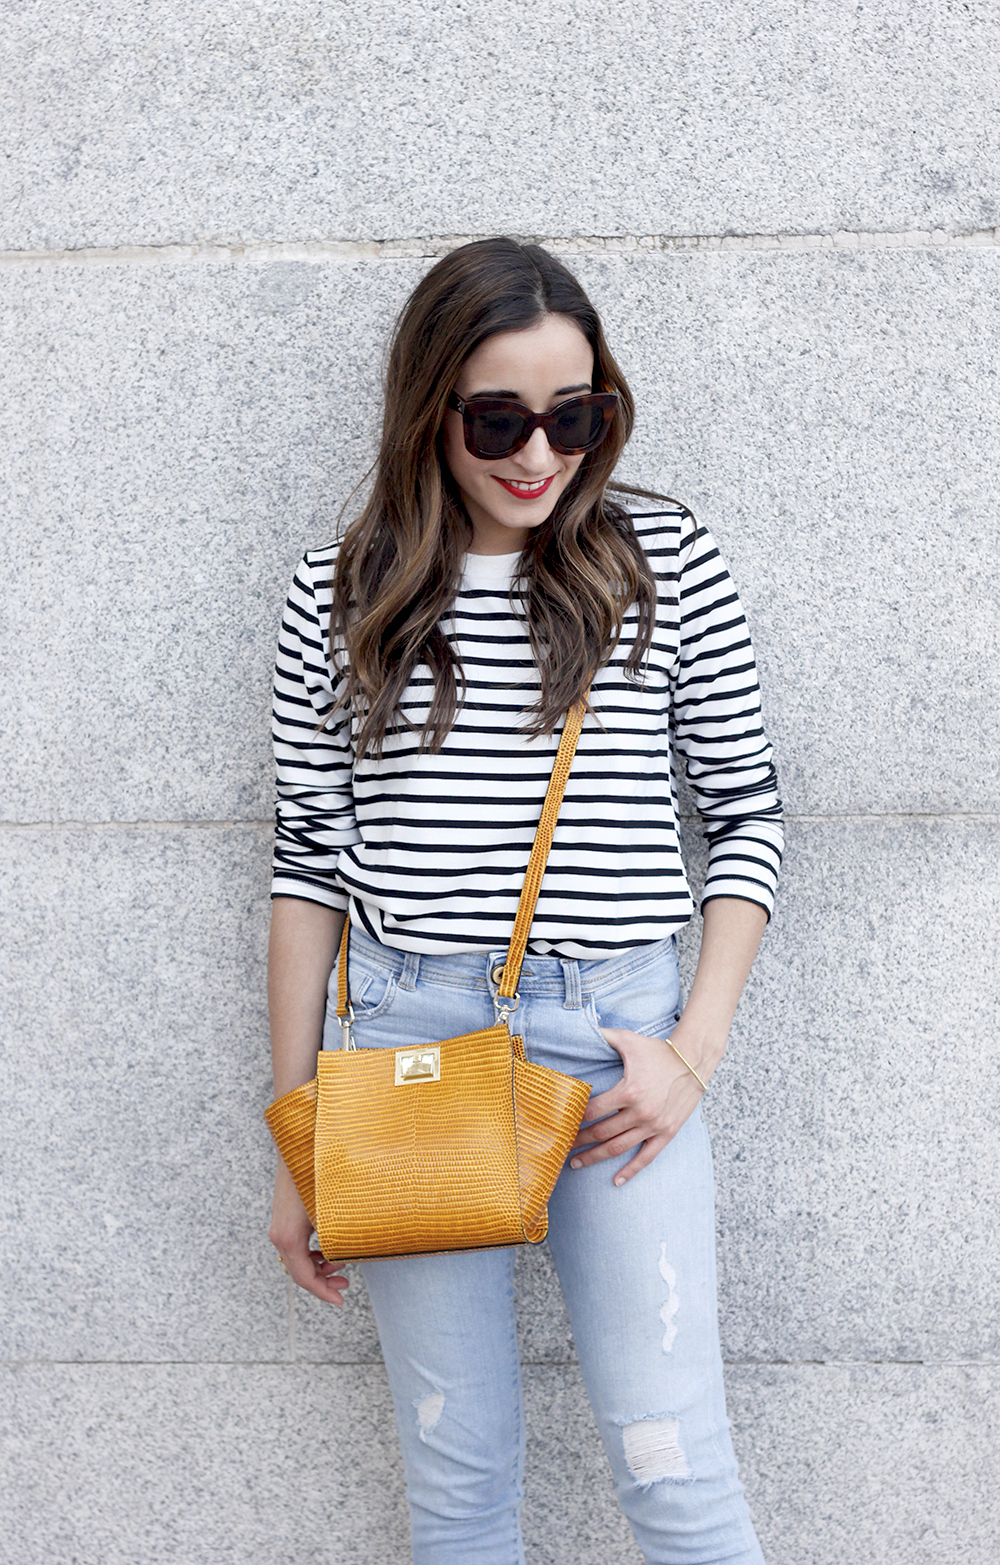 navy stripes denim jeans mustard bag uterqüe heels outfit fashion style10